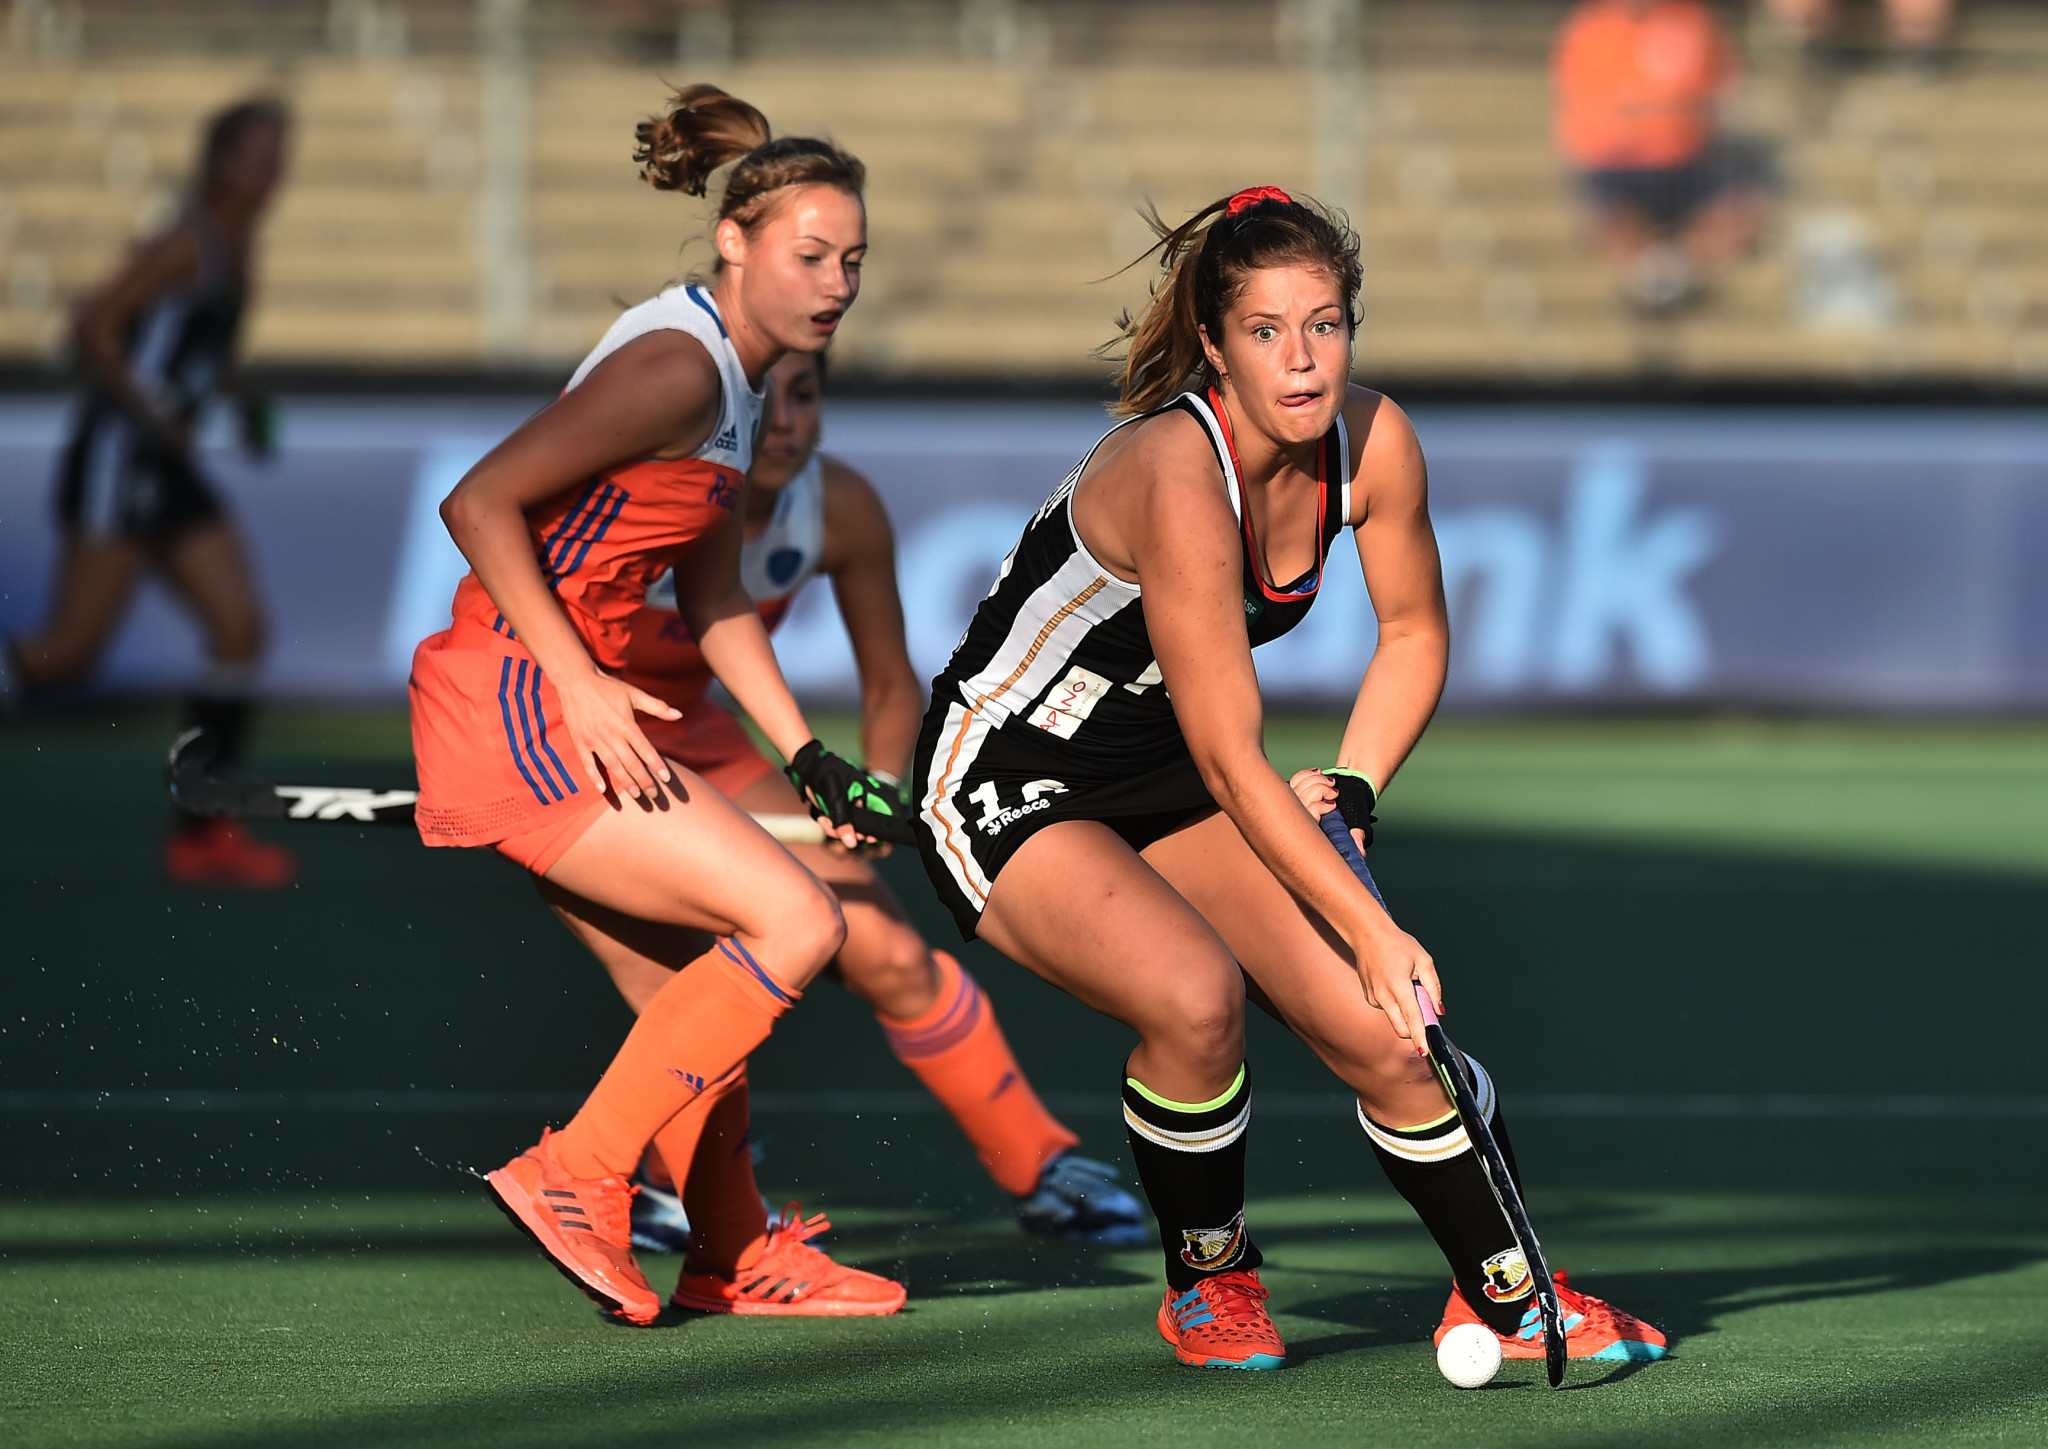 The Netherlands and Germany set for FIH Hockey Pro League clashes